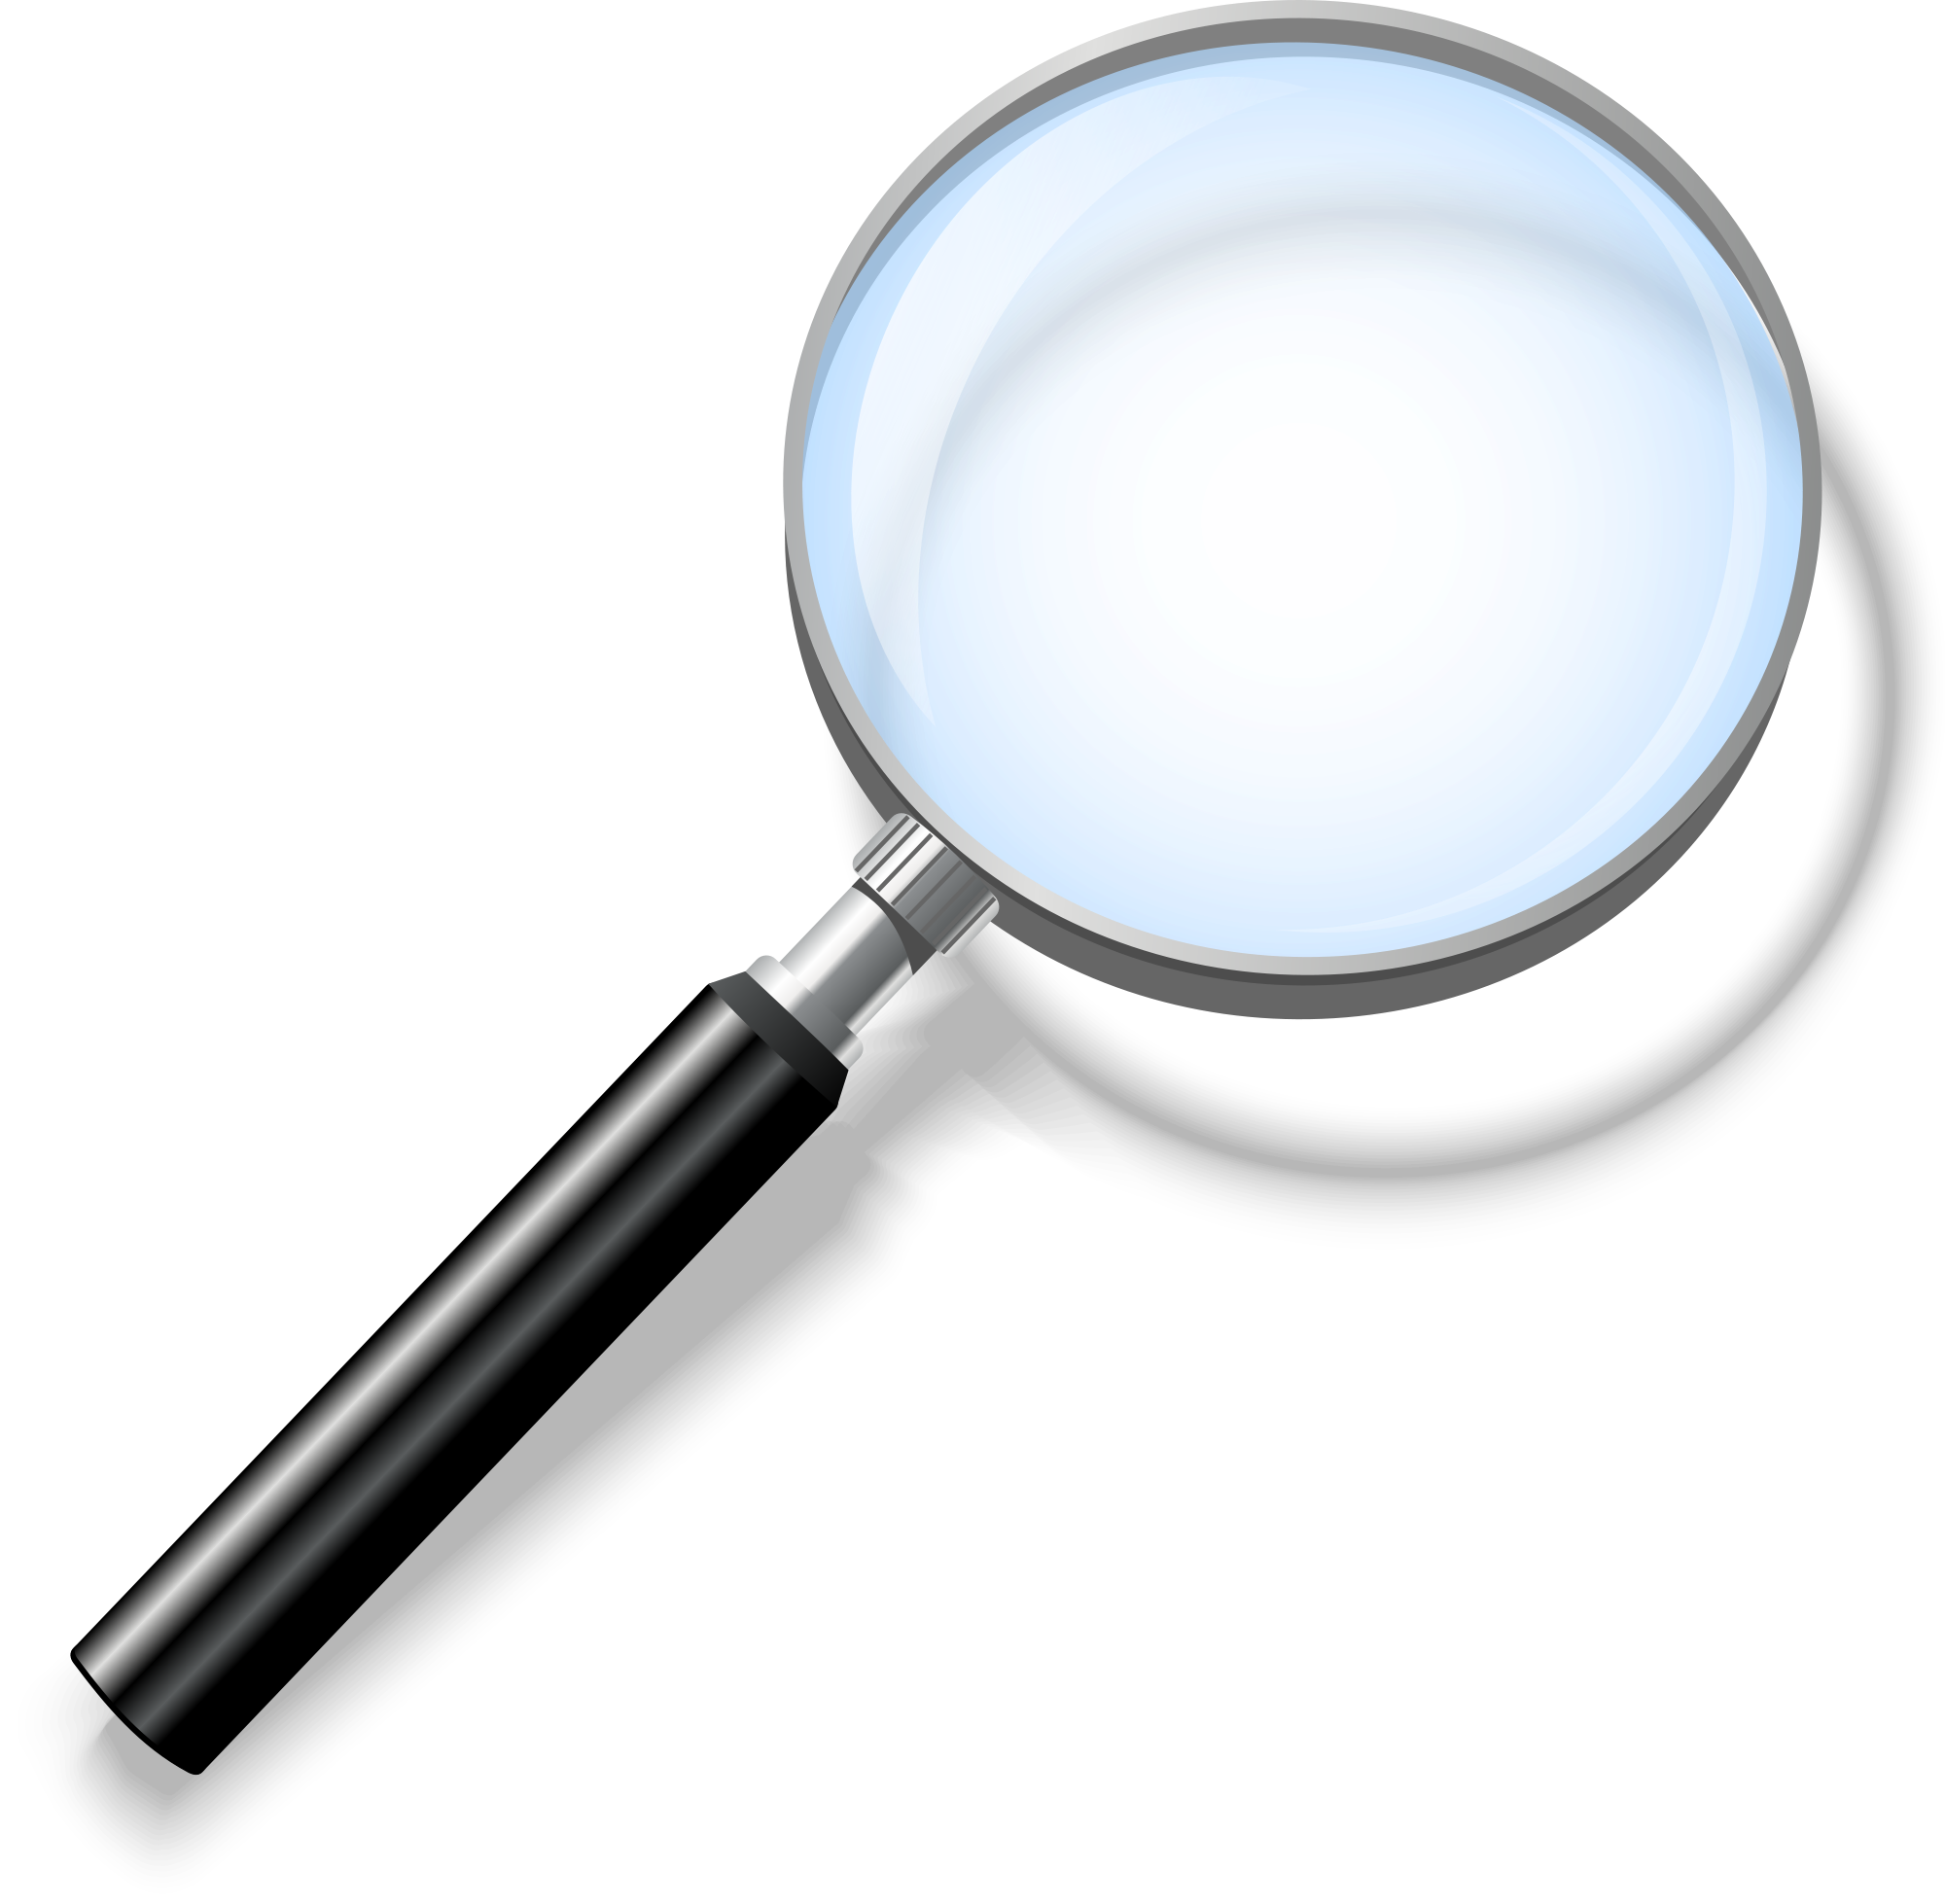 Magnifying HD PNG - 93290